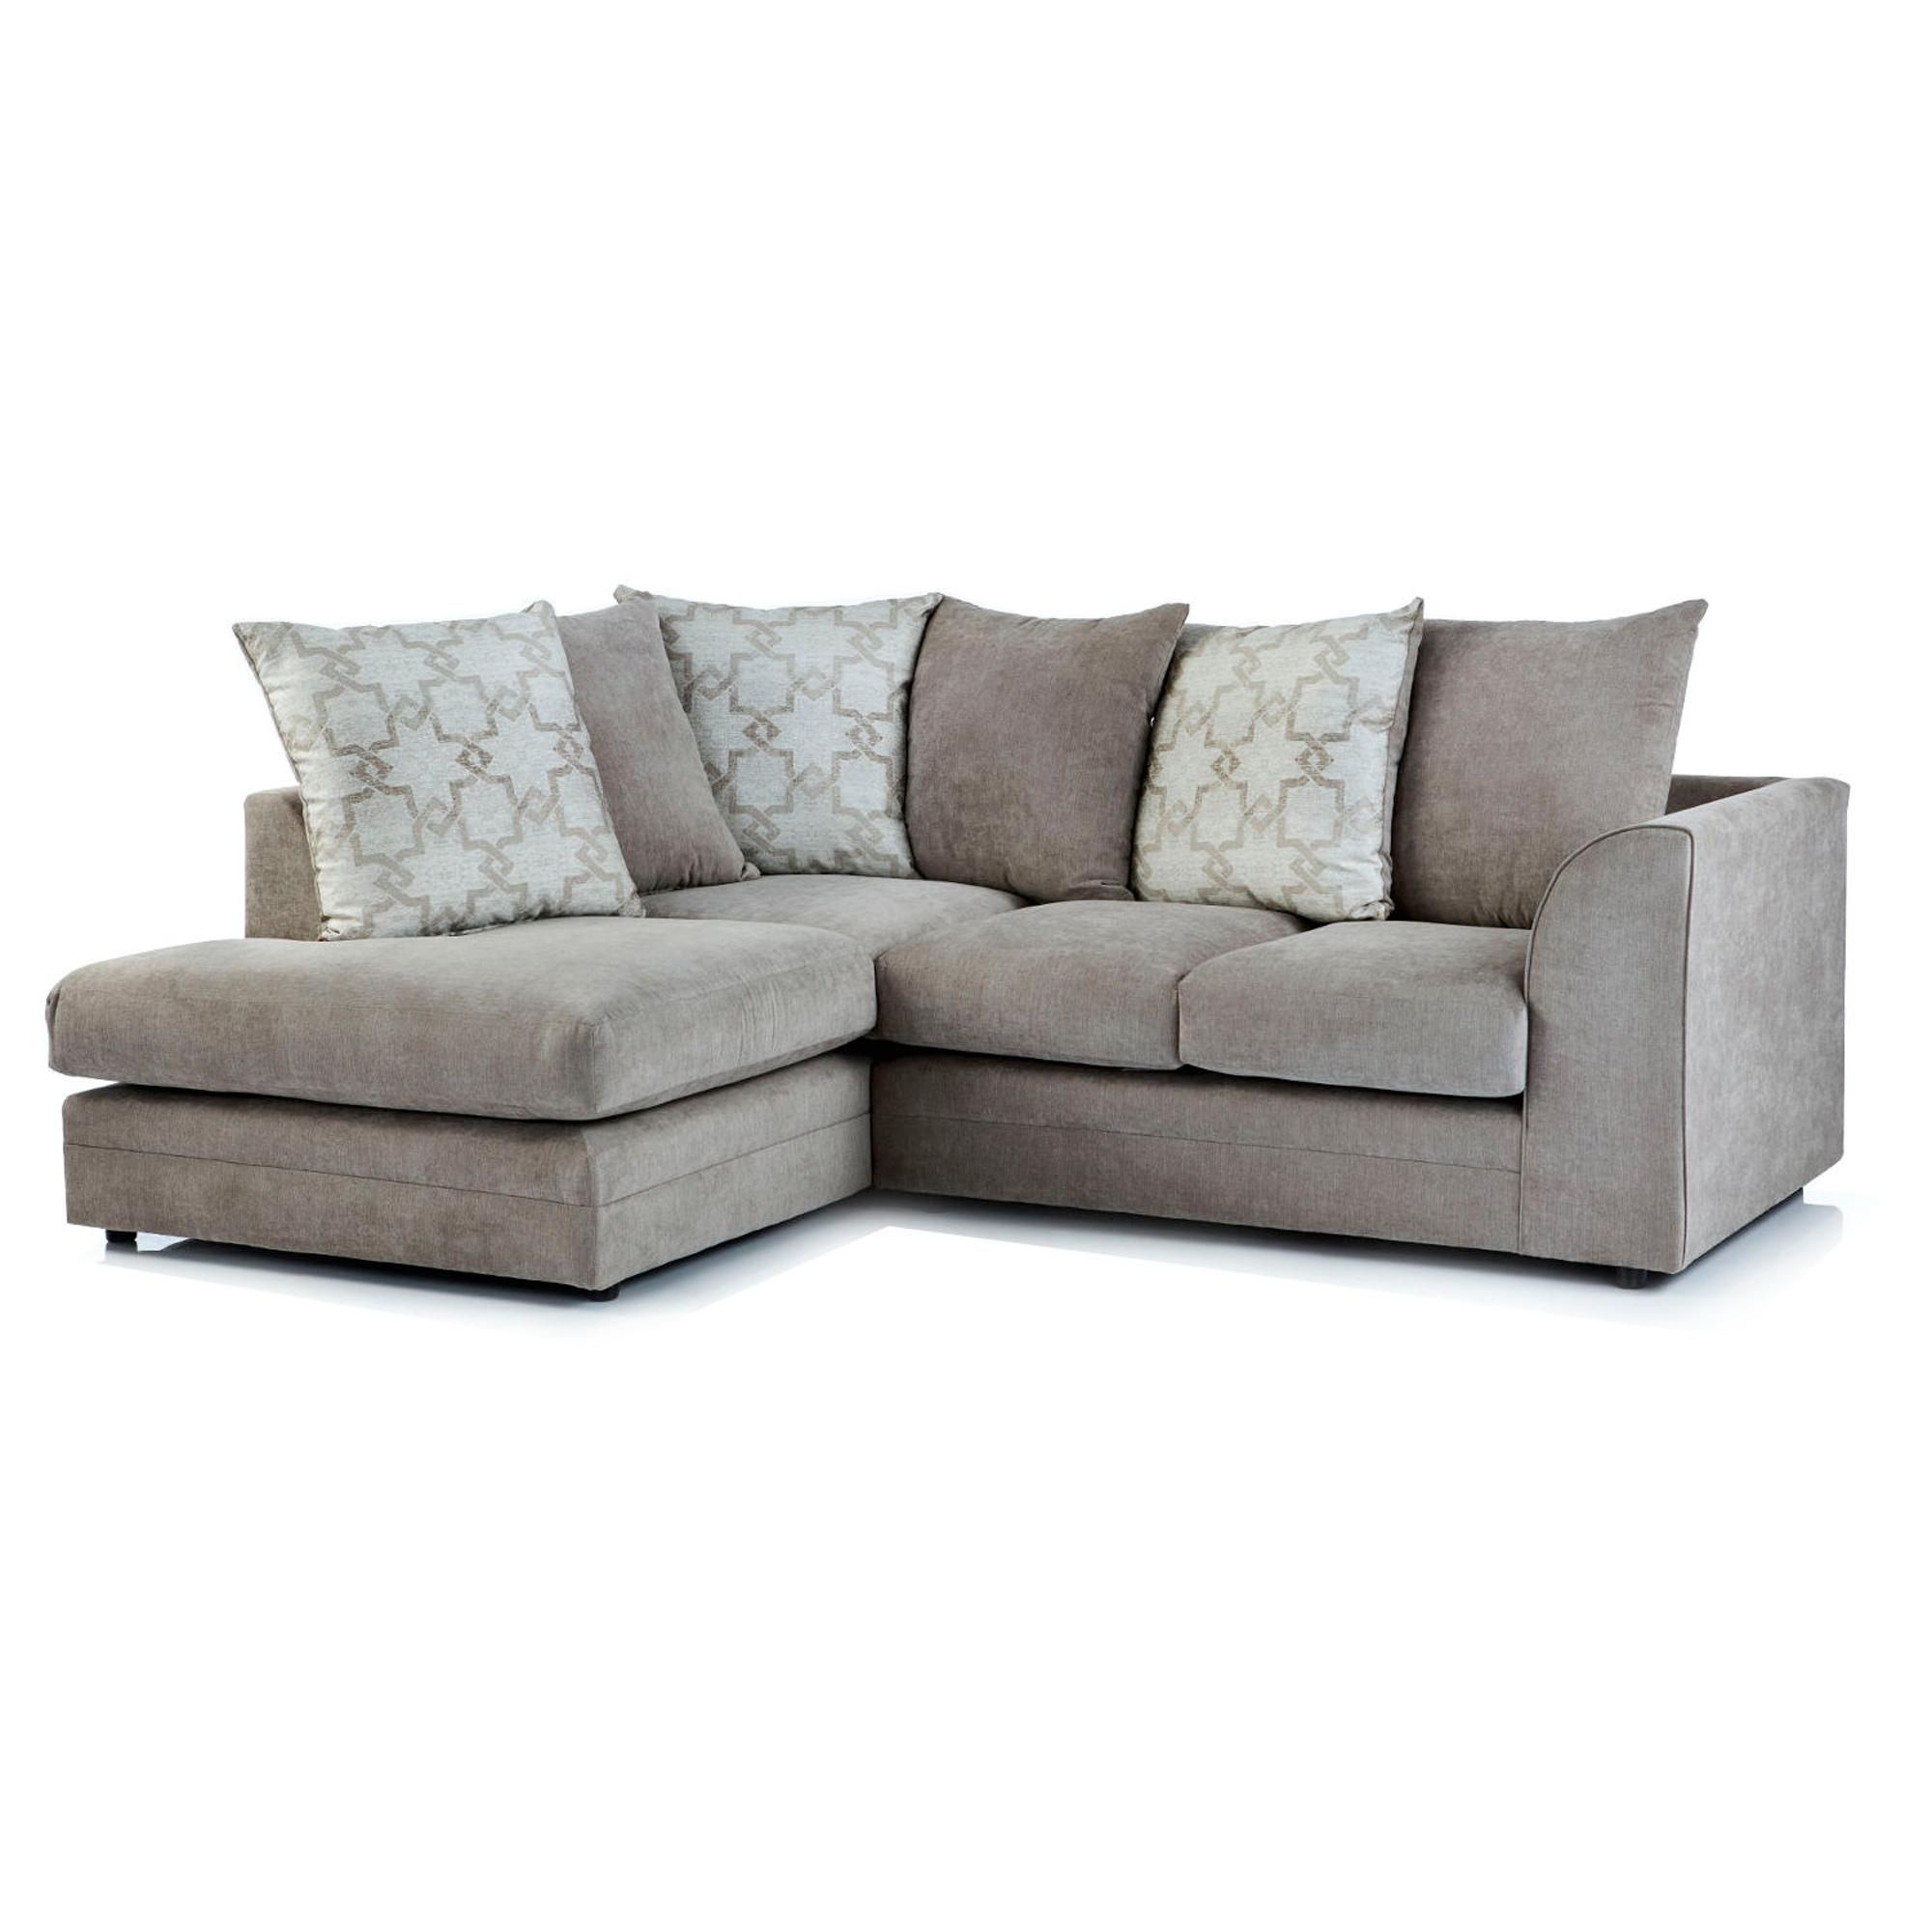 Small Corner Sofa In 2020 With Images Small Corner Sofa Modular Corner Sofa Corner Sofa